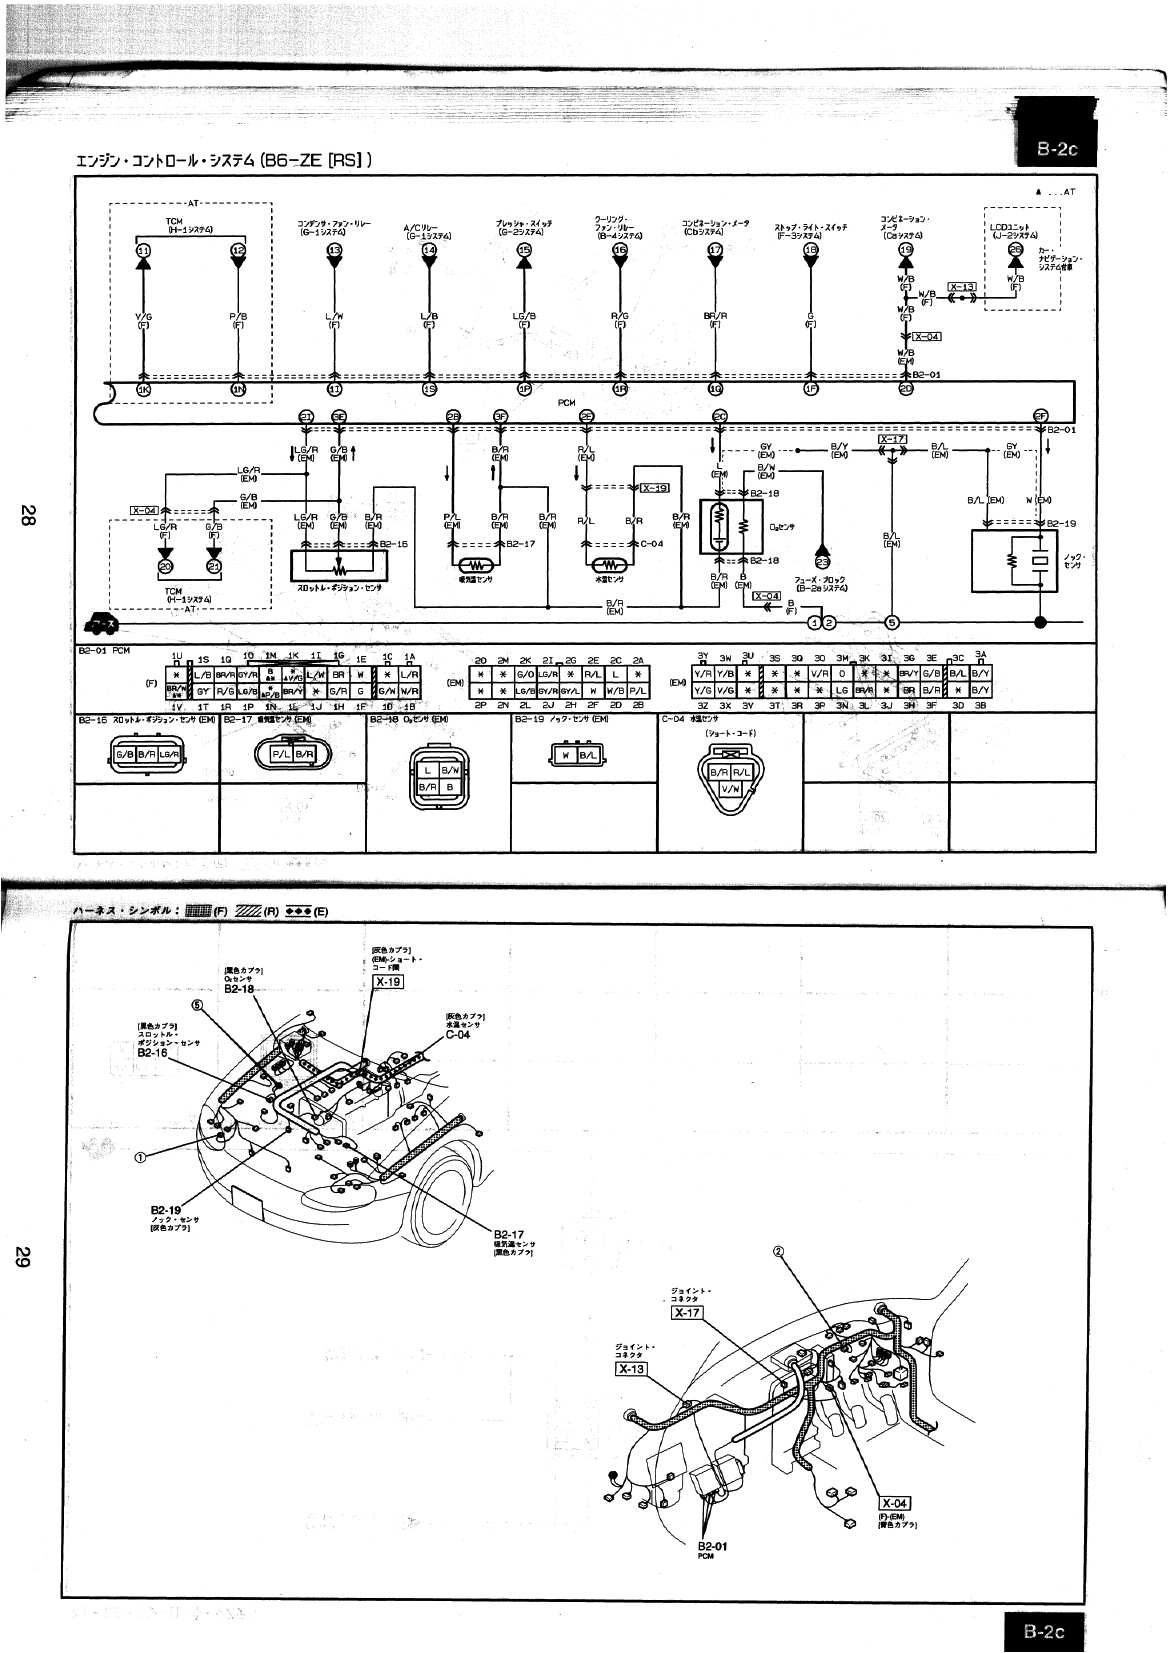 japan wiring diagram fender jazz bass special japan wiring diagram